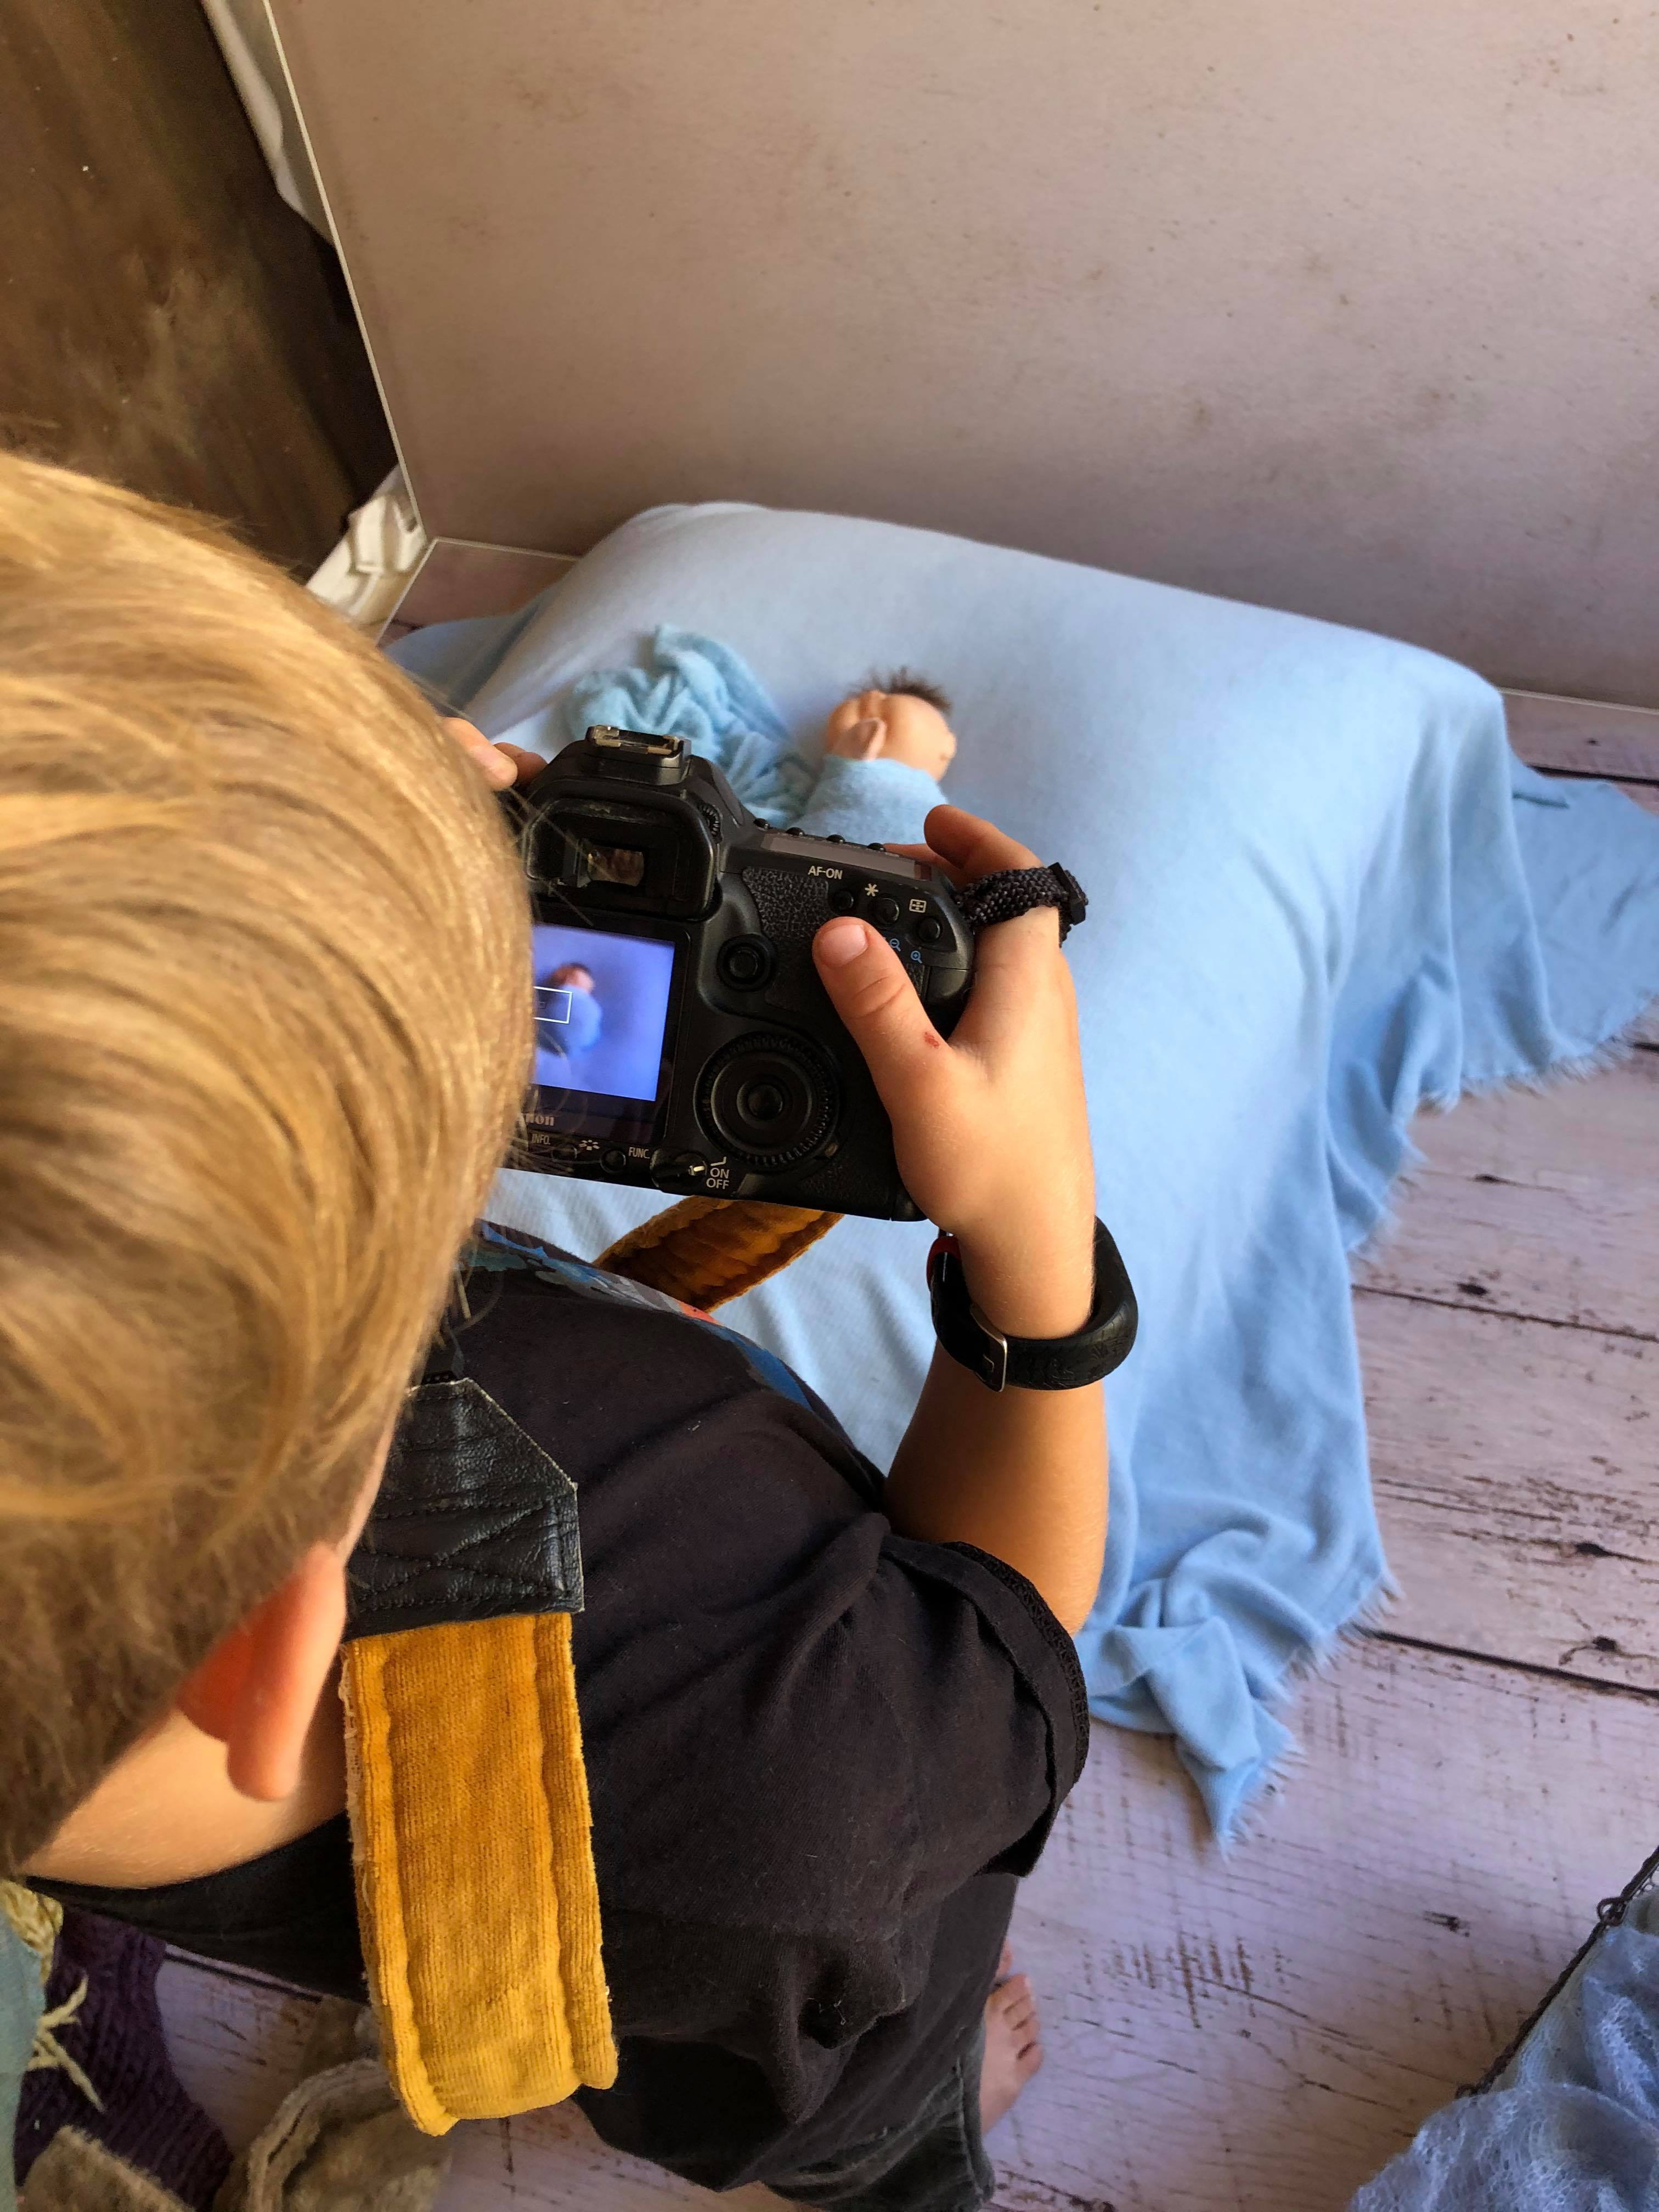 Seven year old boy taking photographs with a digital slr camera of a doll sleeping on a beanbag with blue blanket and wrap in a newborn studio